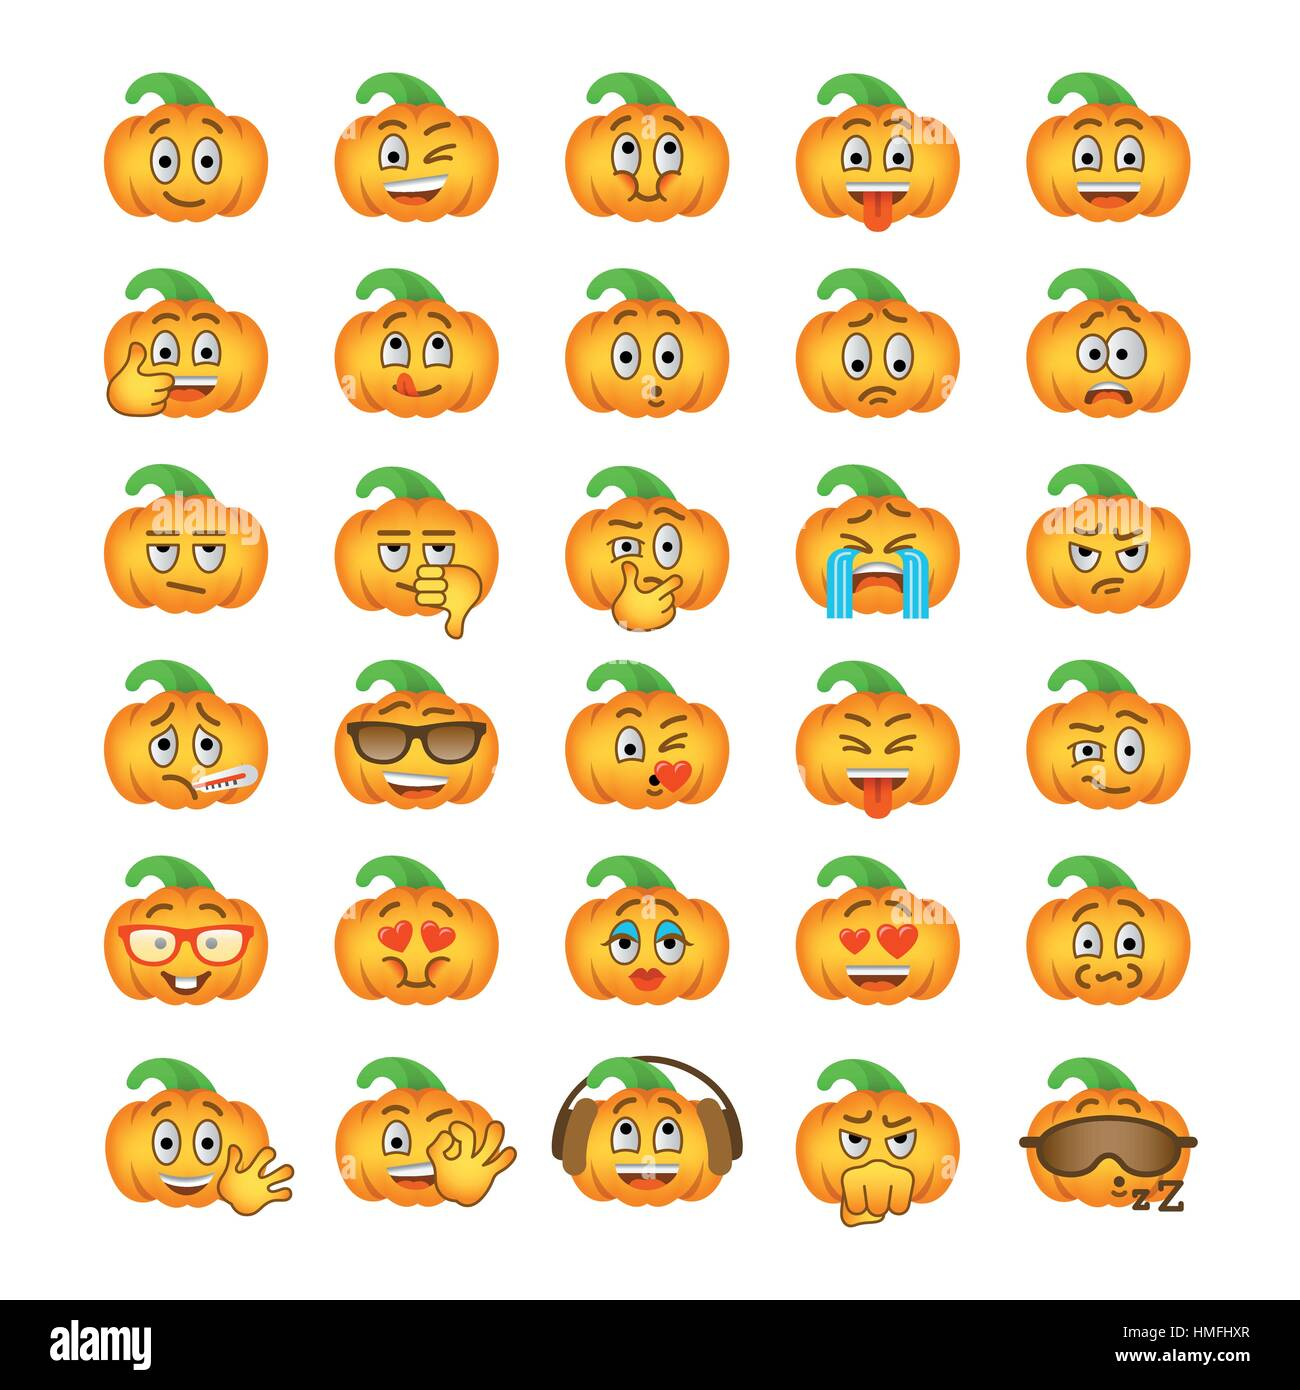 Smiley flat vector emoticons with emotions and funny facial stock halloween pumpkin emoji emoticons smiley face holiday symbol flat vector icons different facial emotions buycottarizona Choice Image